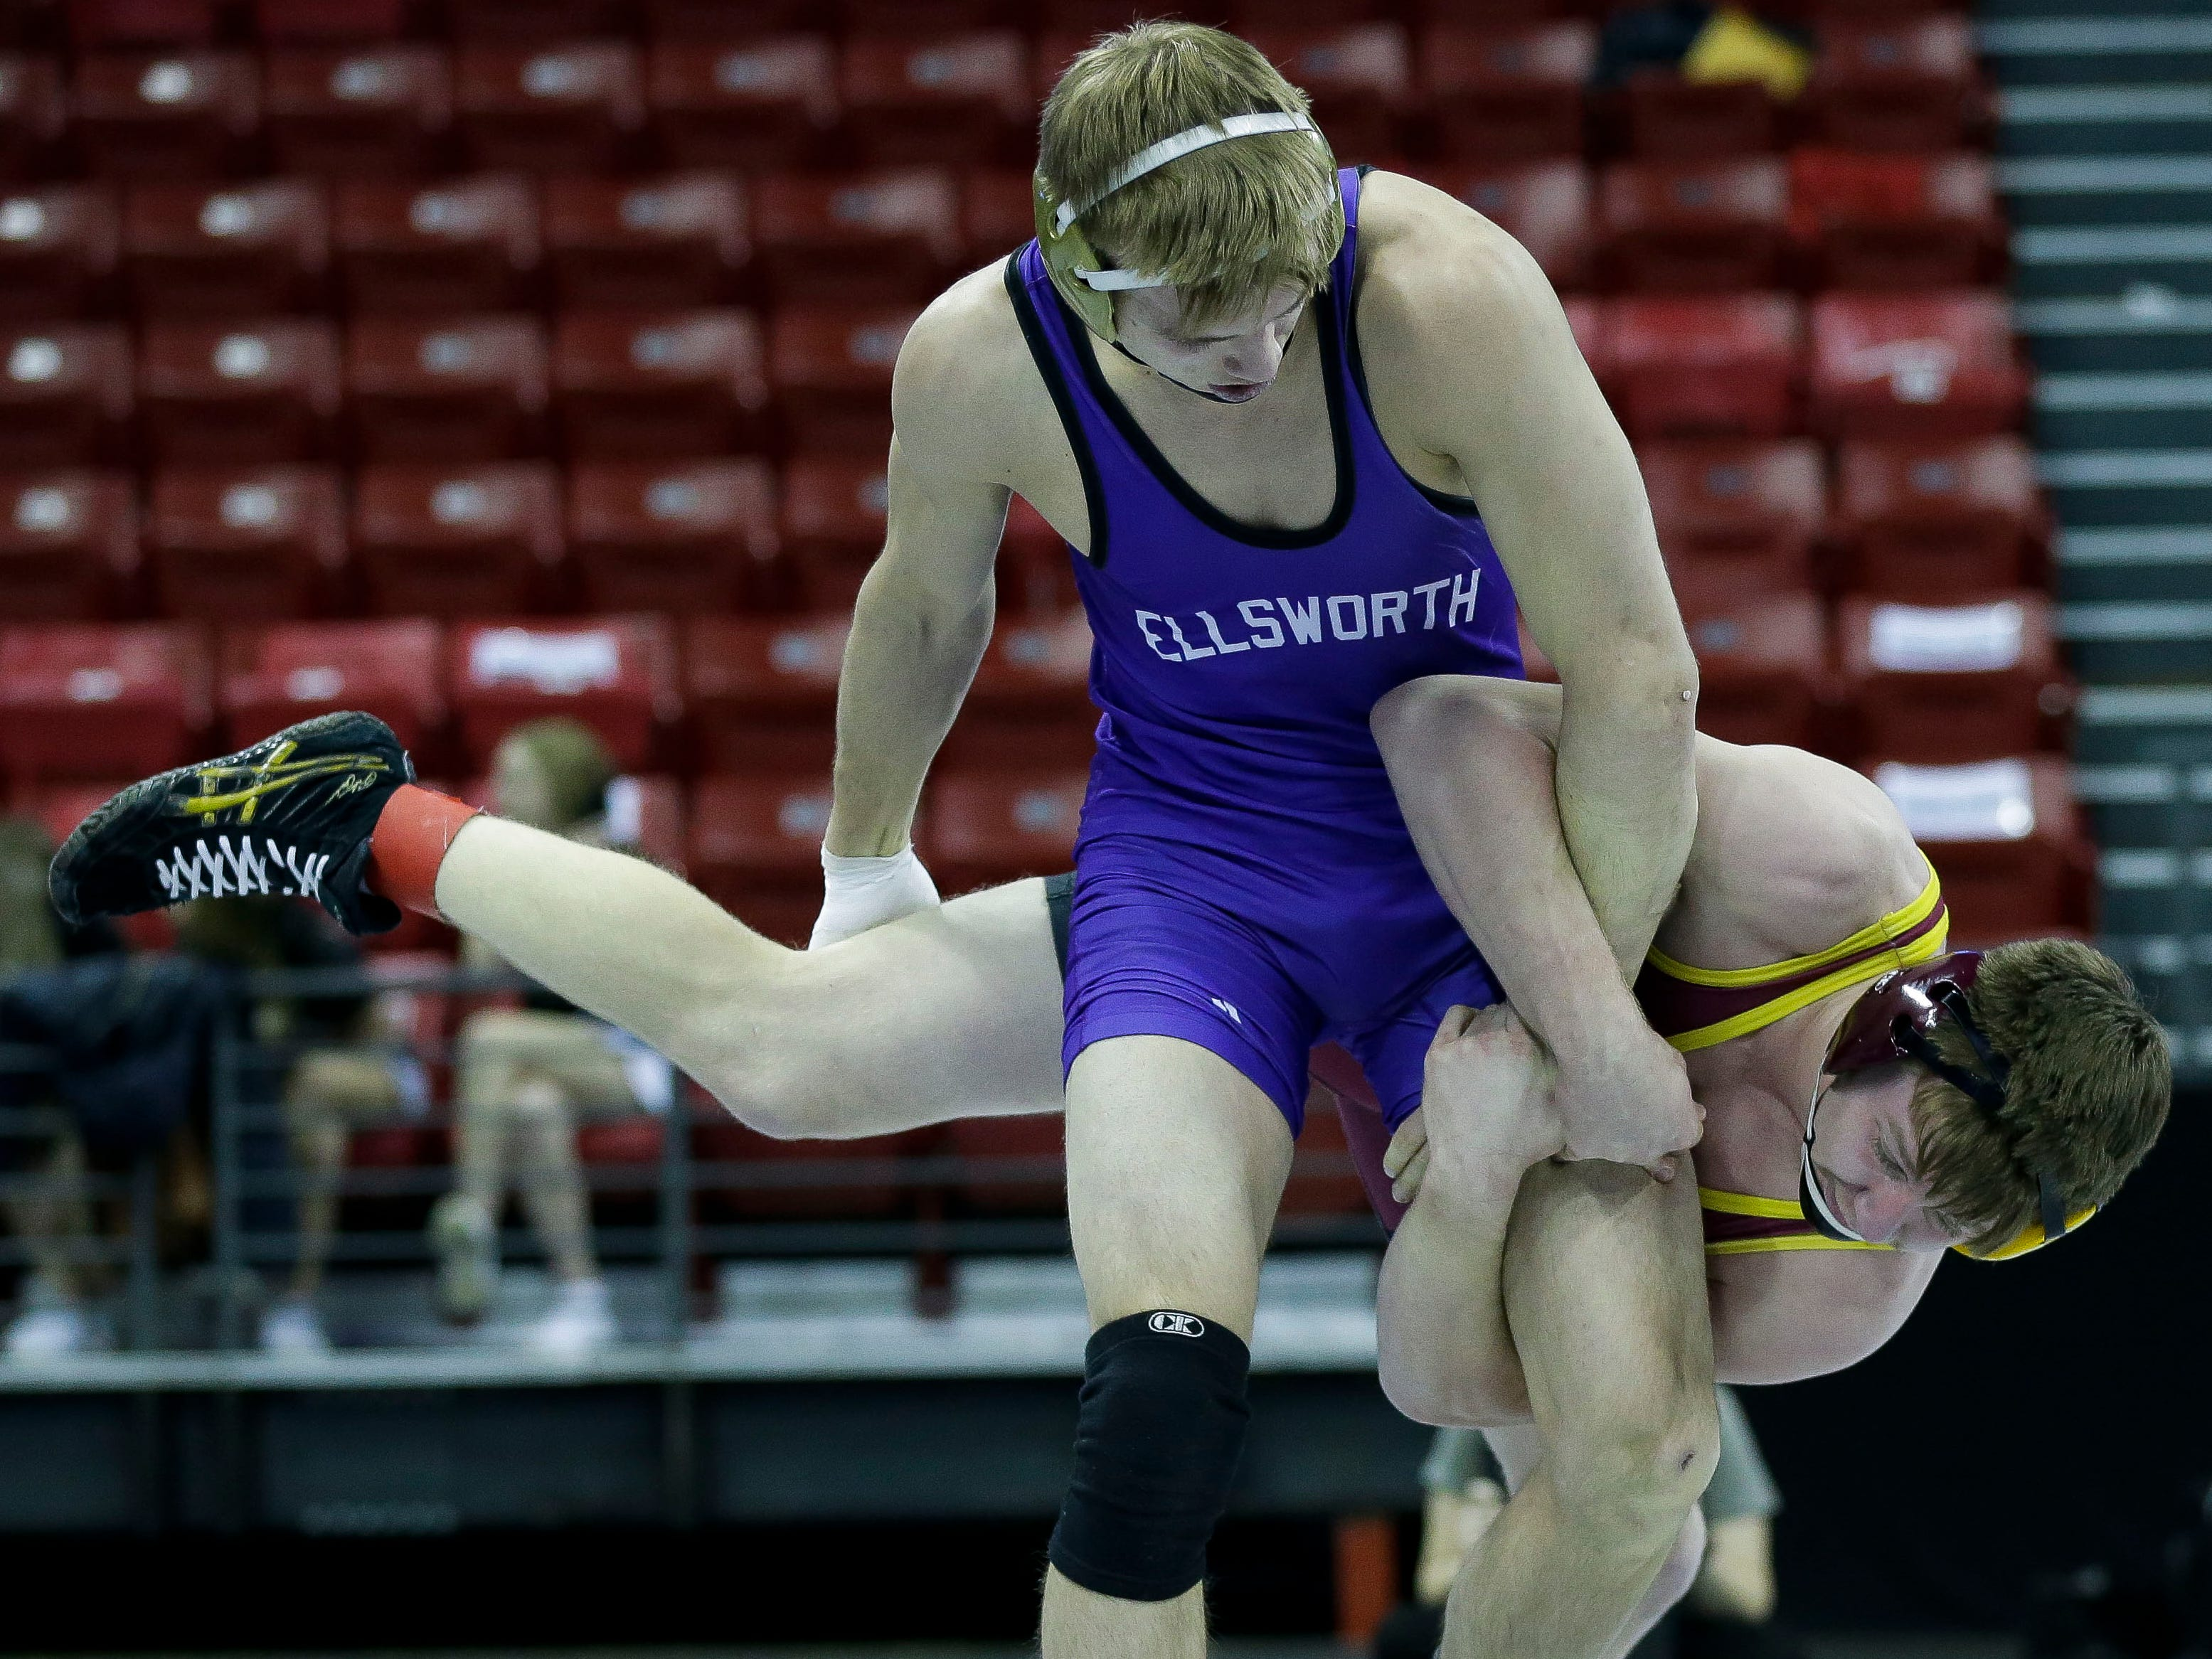 Luxemburg-Casco's Colton Worachek wrestles against Ellsworth's Cedric Kosnopfal in a Division 2 160-pound preliminary match during the WIAA state wrestling tournament on Thursday, February 21, 2019, at the Kohl Center in Madison, Wis.